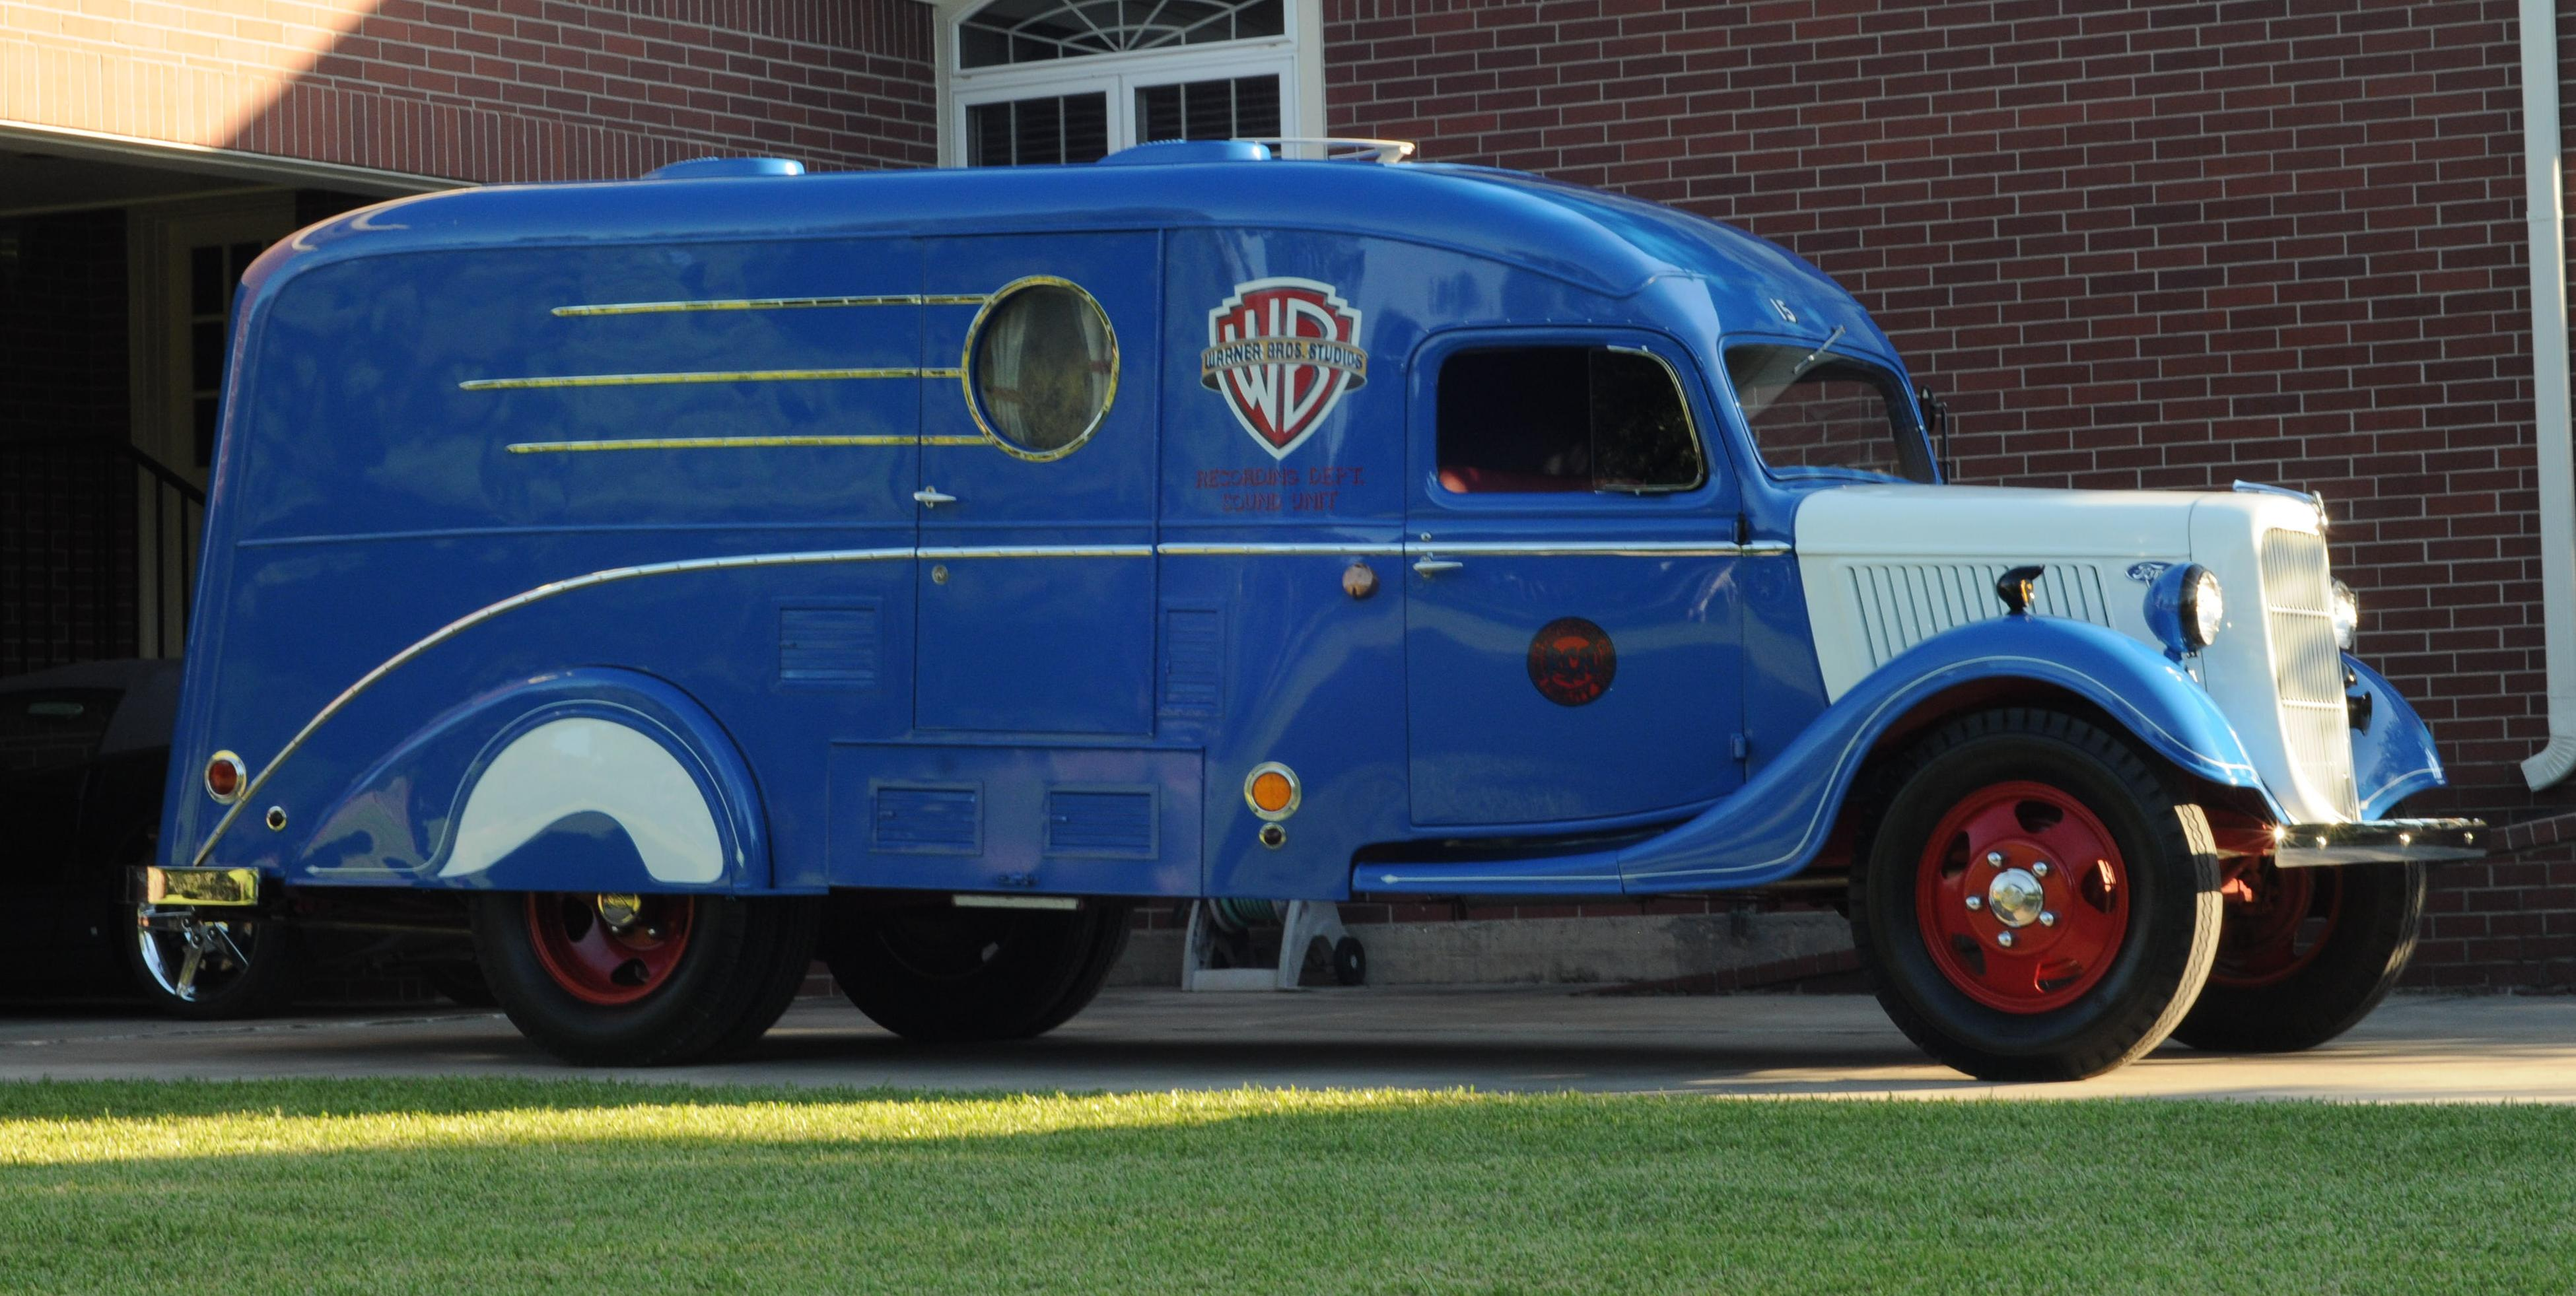 Warner Brothers Sound Truck